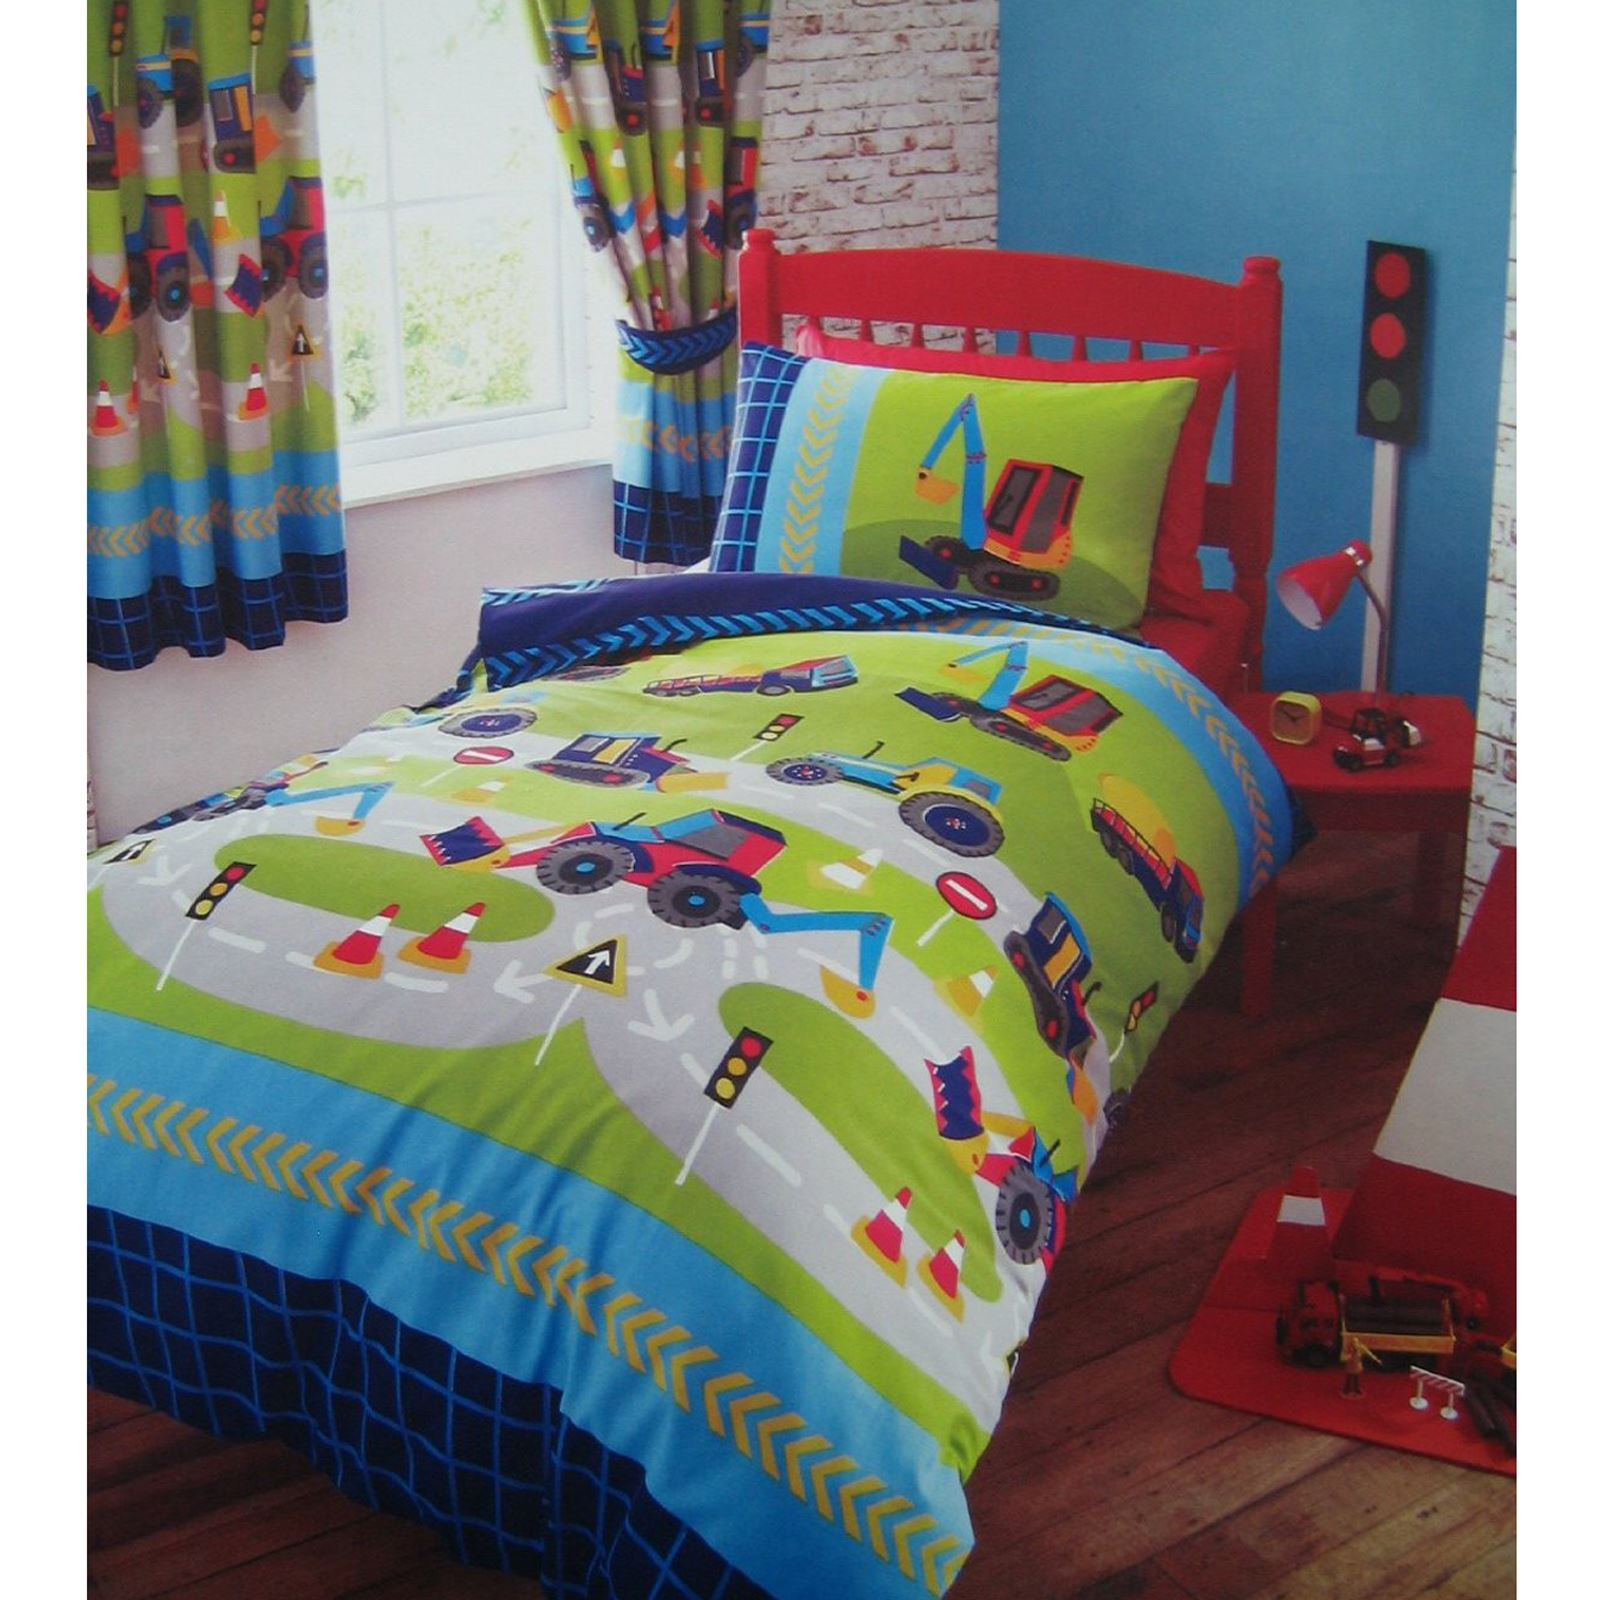 DIGGERS DUVET COVER SET IN SINGLE MATCHING LINED CURTAINS KIDS BEDROOM RANGE